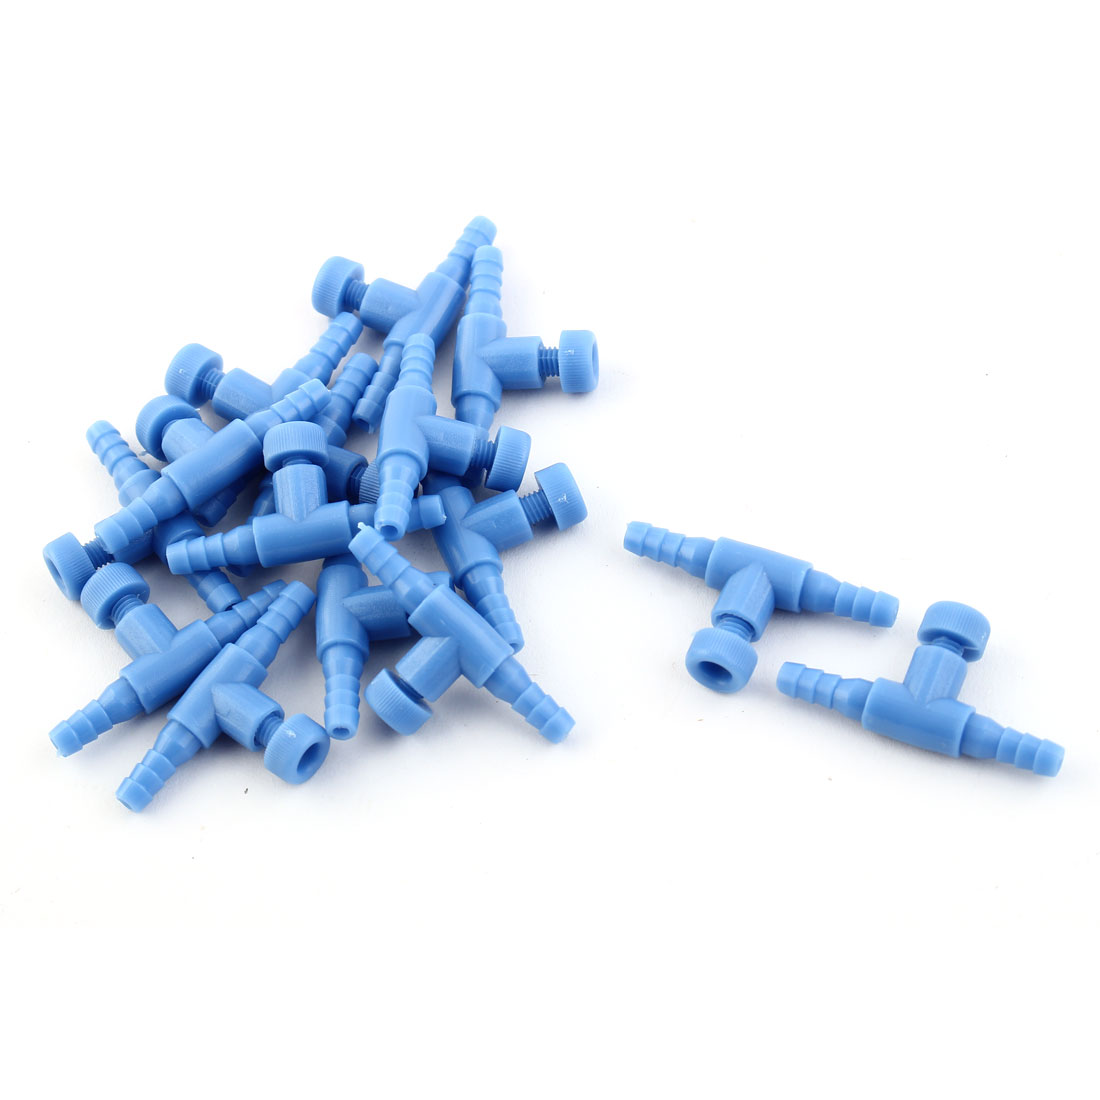 Fish Tank Aquarium Plastic Air Control Valve Connector Light Blue 15 Pcs